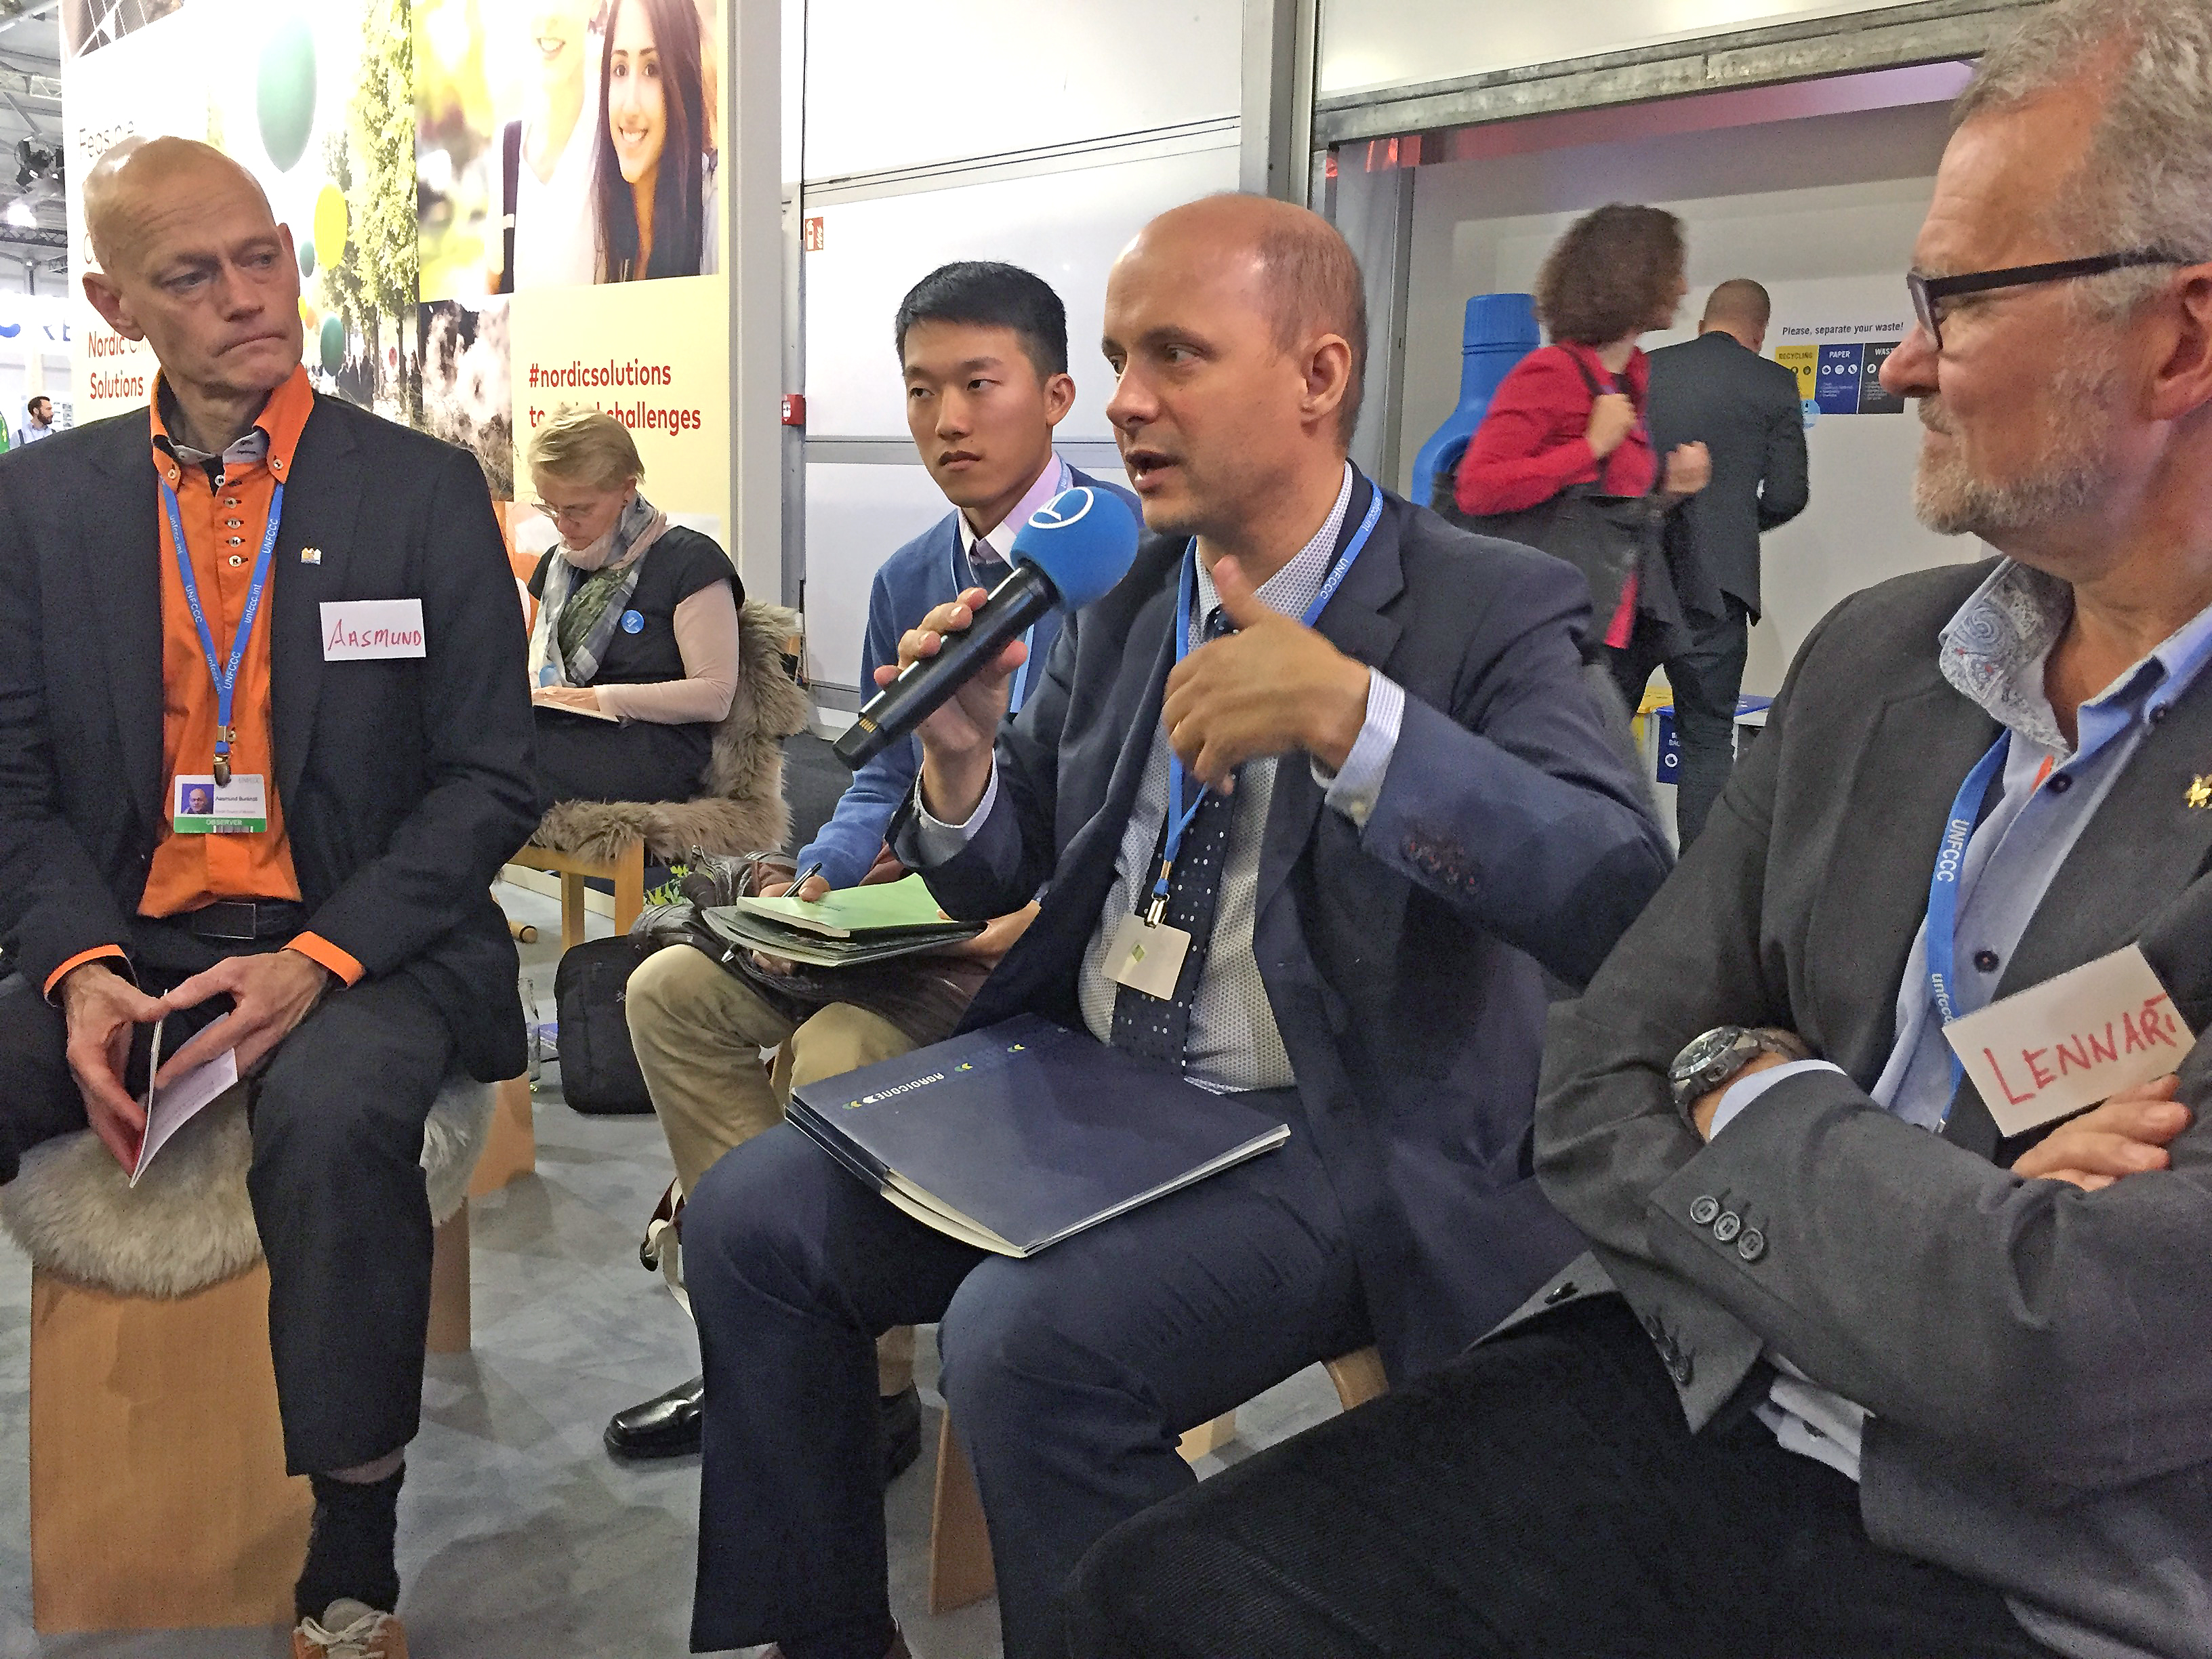 Four men in suits sitting in a row, man in center is holding a microphone. Photo.